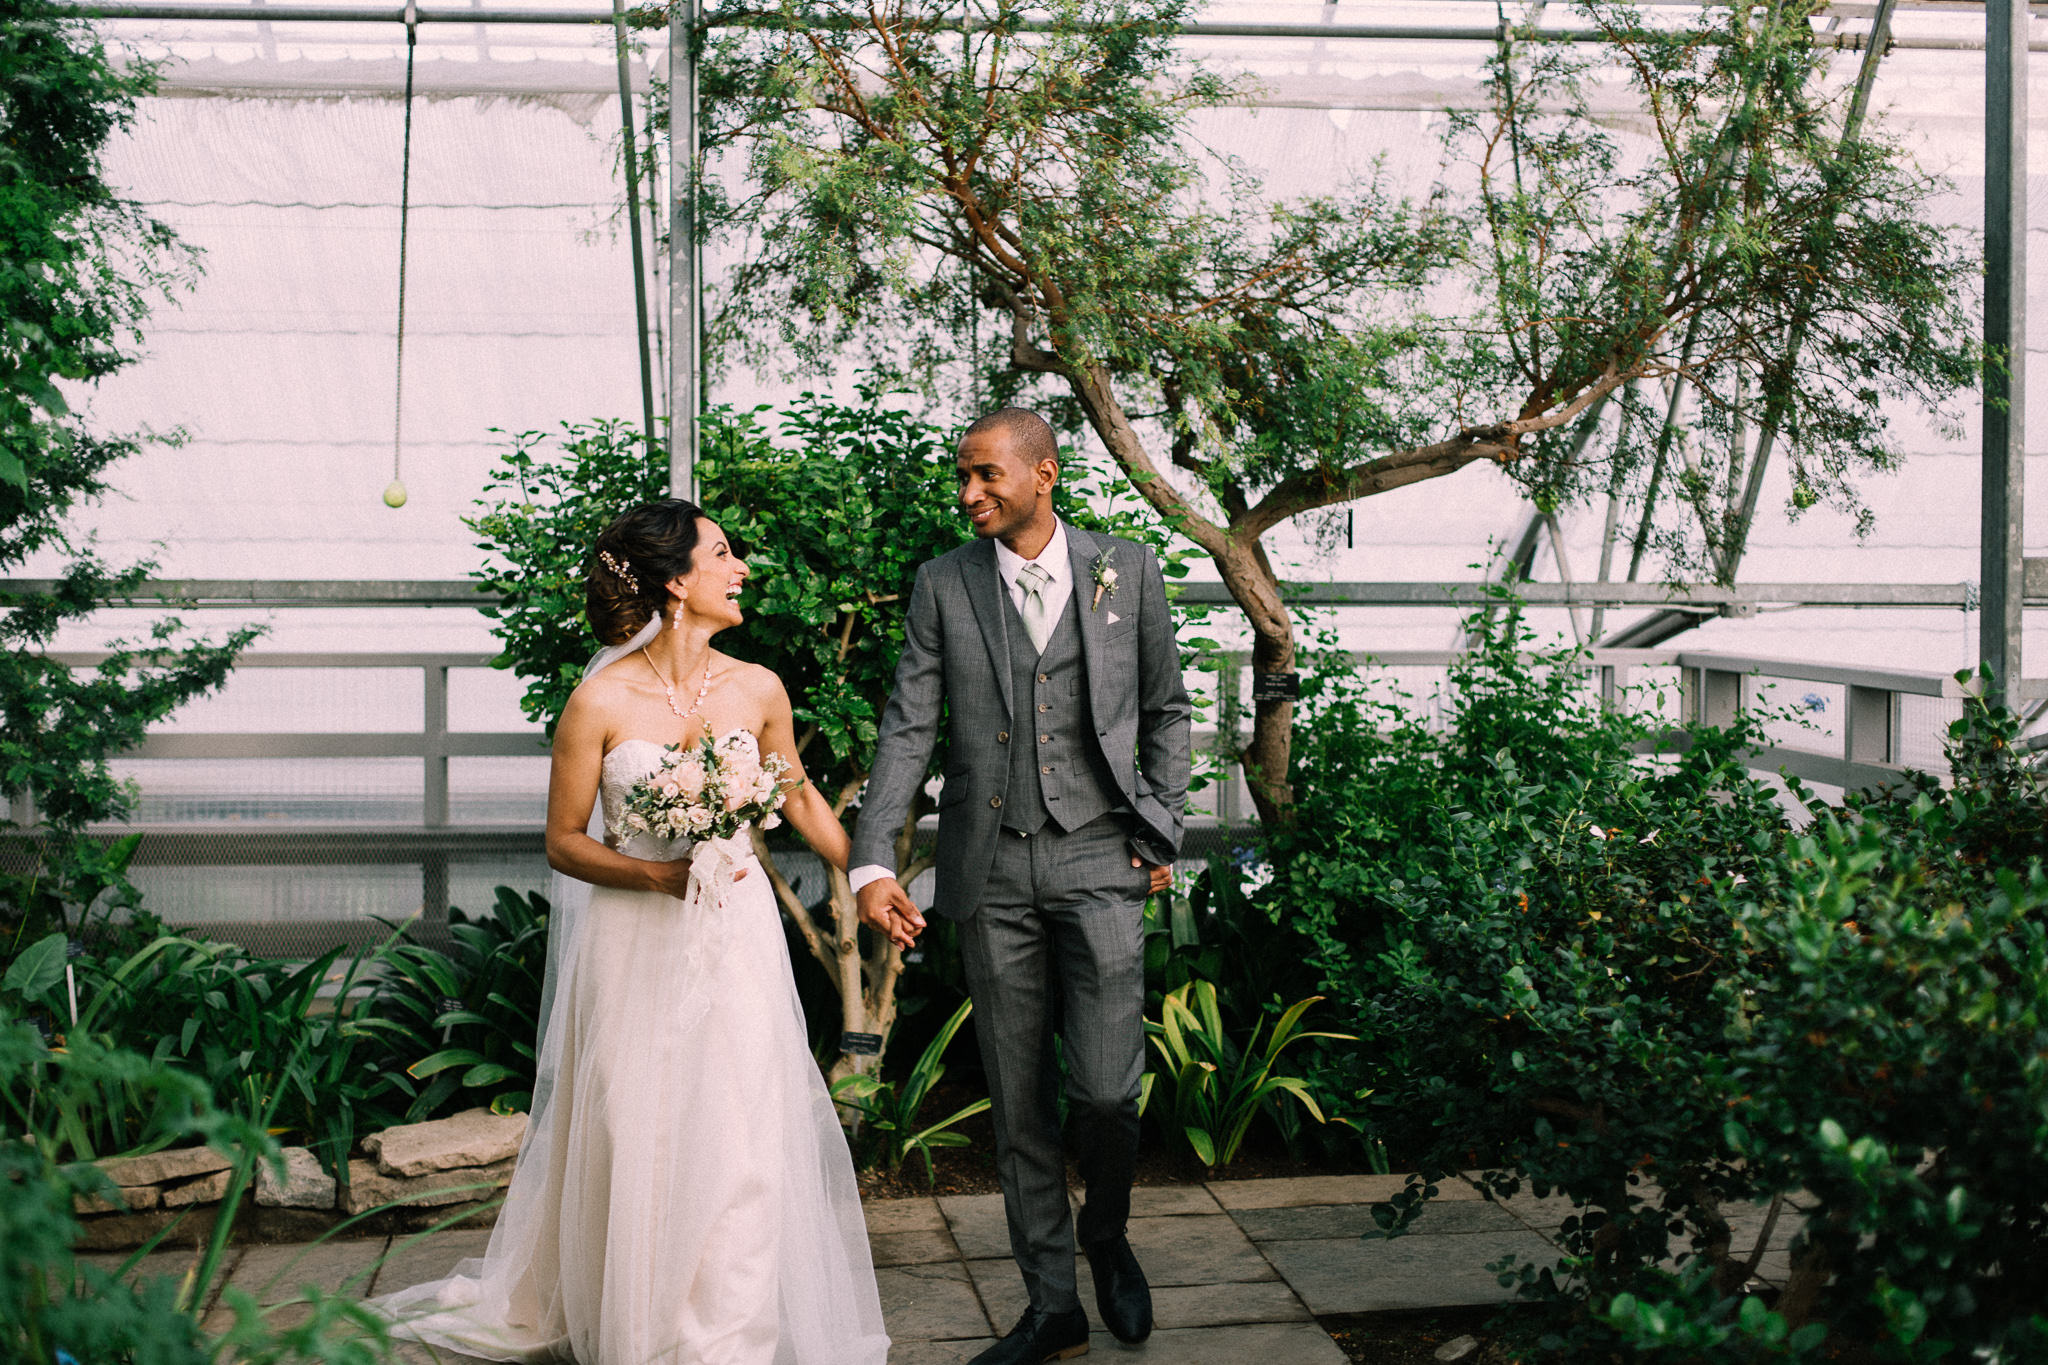 Burlington Fall wedding at Royal Botanical Gardens by Max Wong Photo (32)